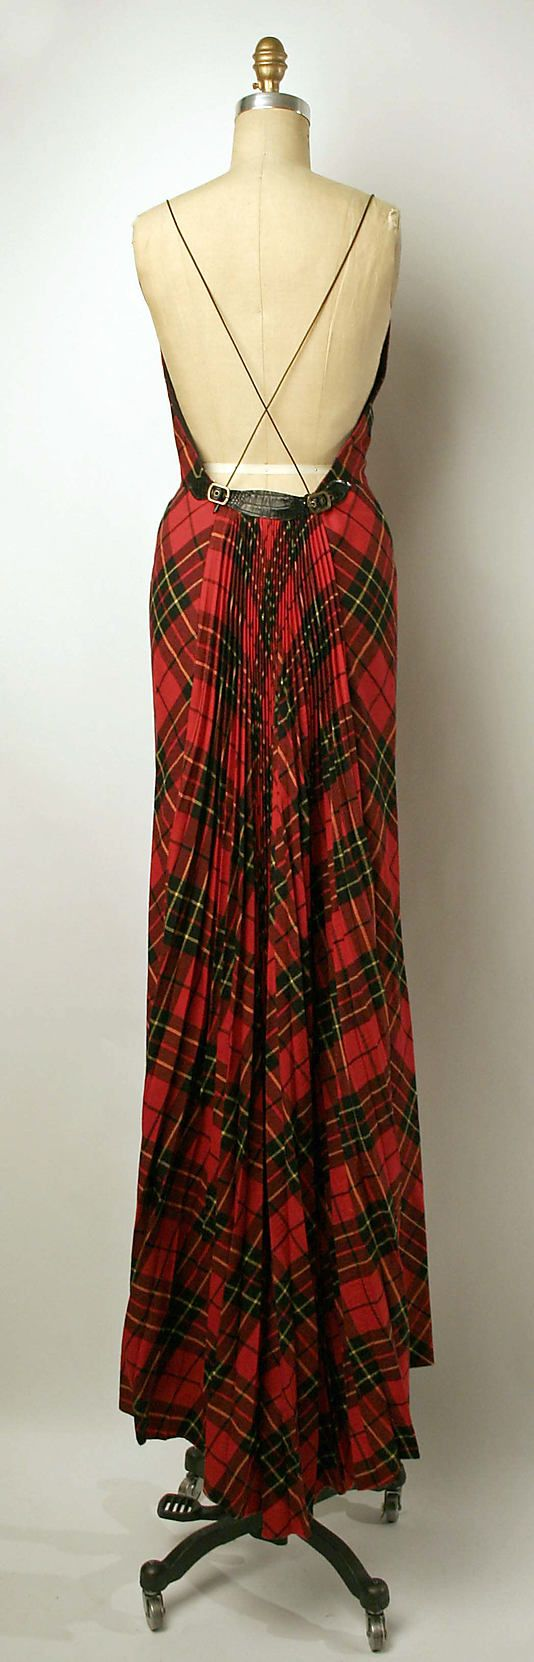 Alexander McQueen dress - I think I'd be okay with wearing my clan sash more often if it looked like this!